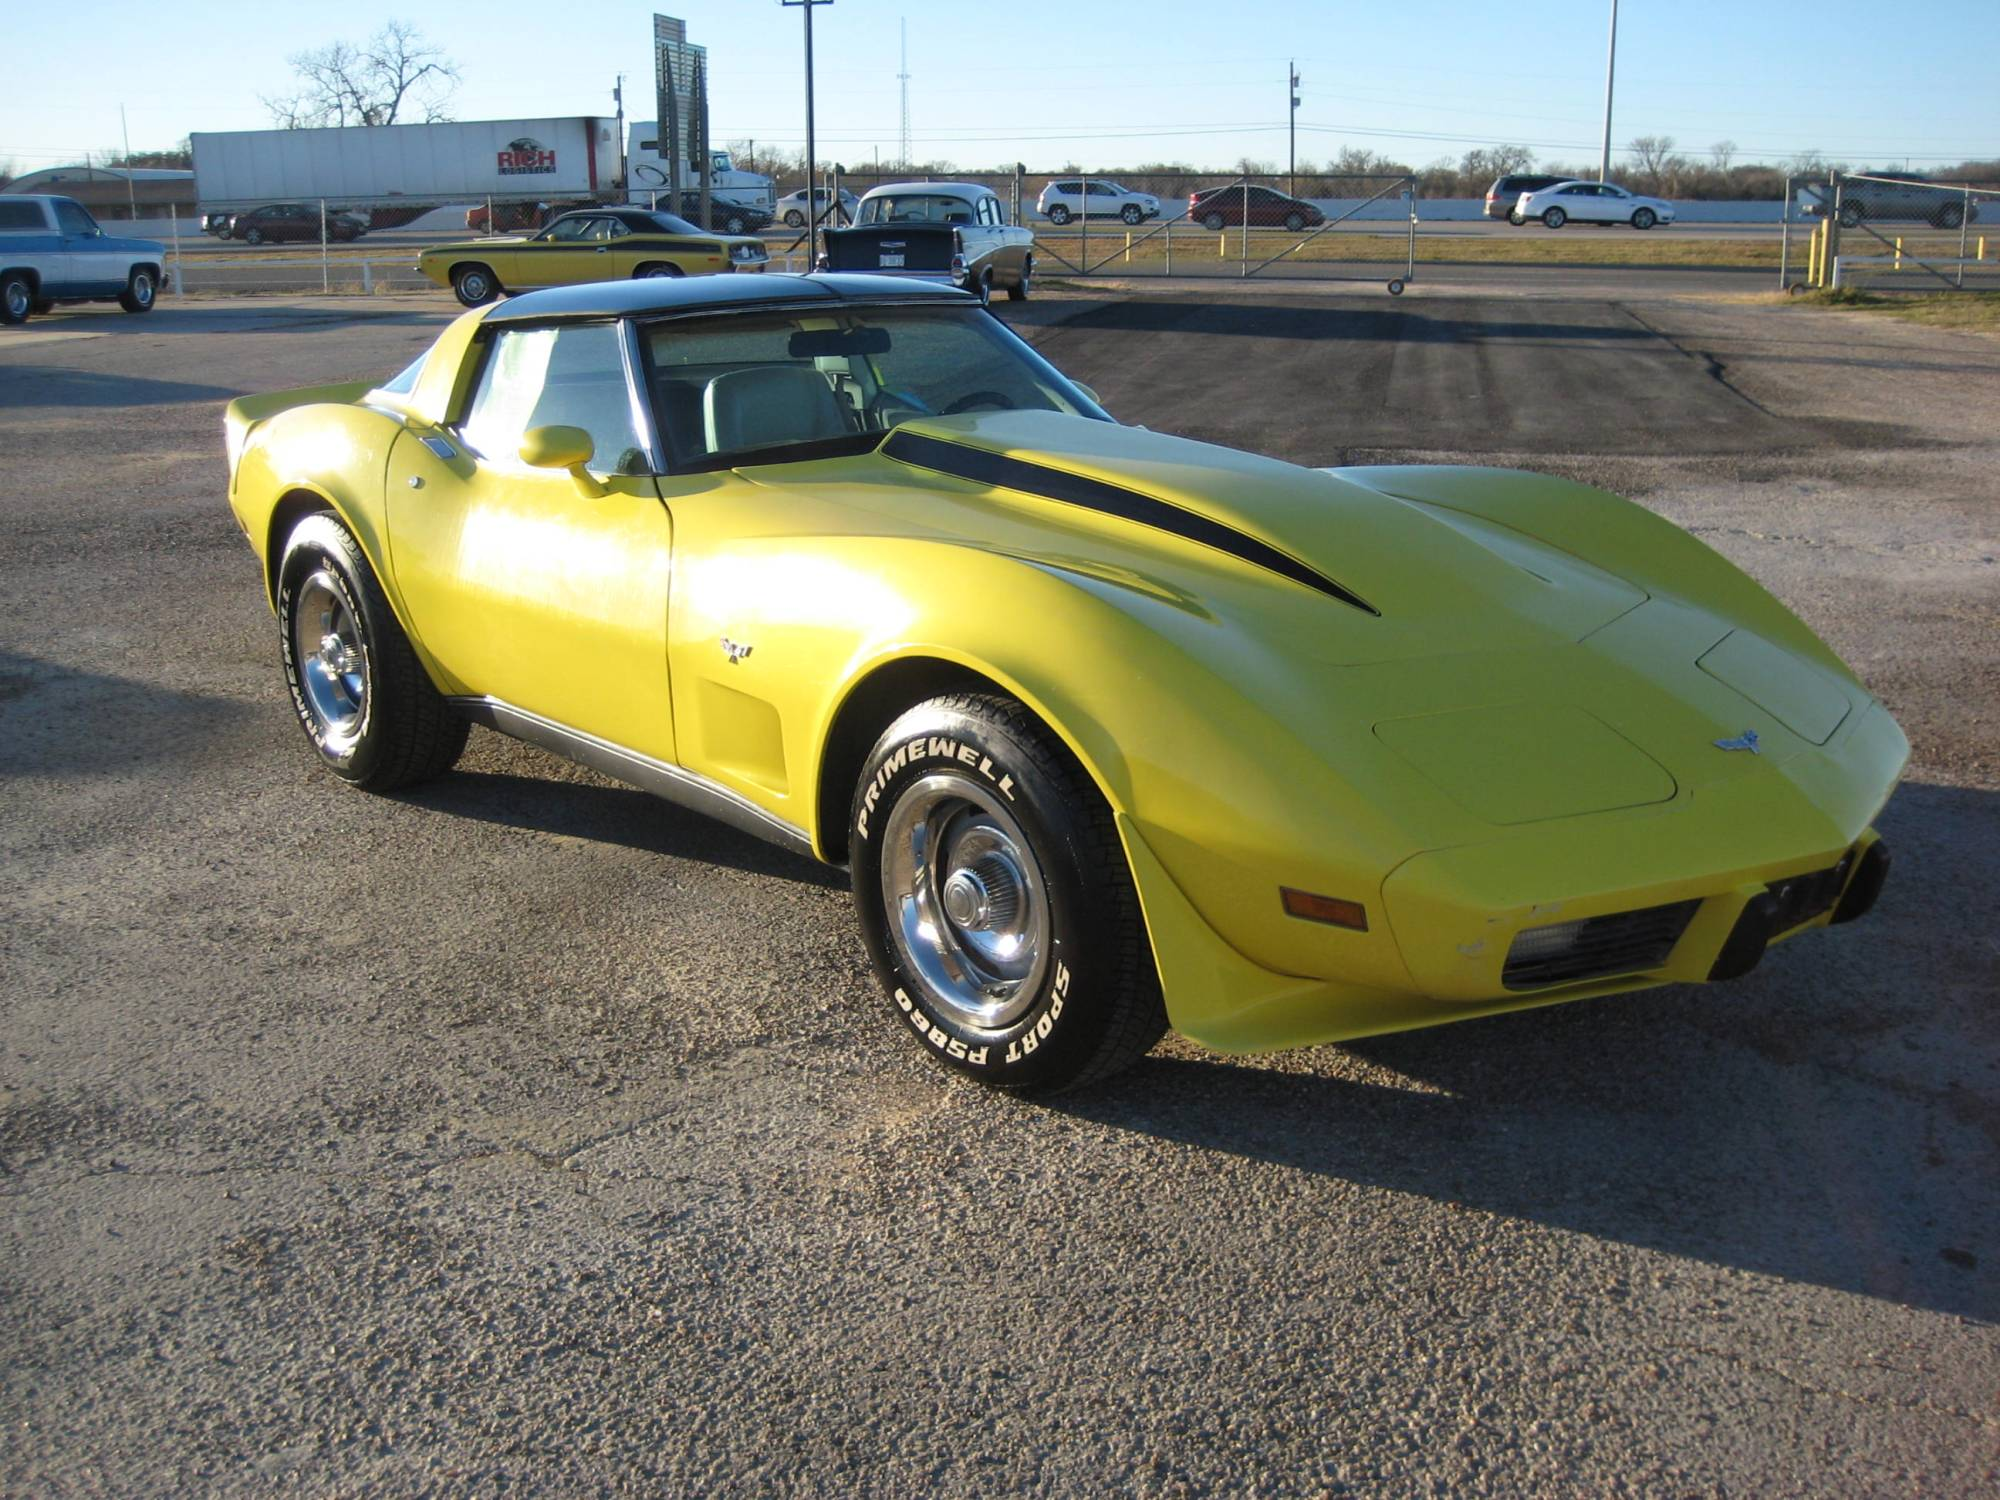 hight resolution of 1979 corvette 350 v8 automatic air cond inop power disc brakes power steering power windows mirrored t tops rally wheels aluminum 4v intake